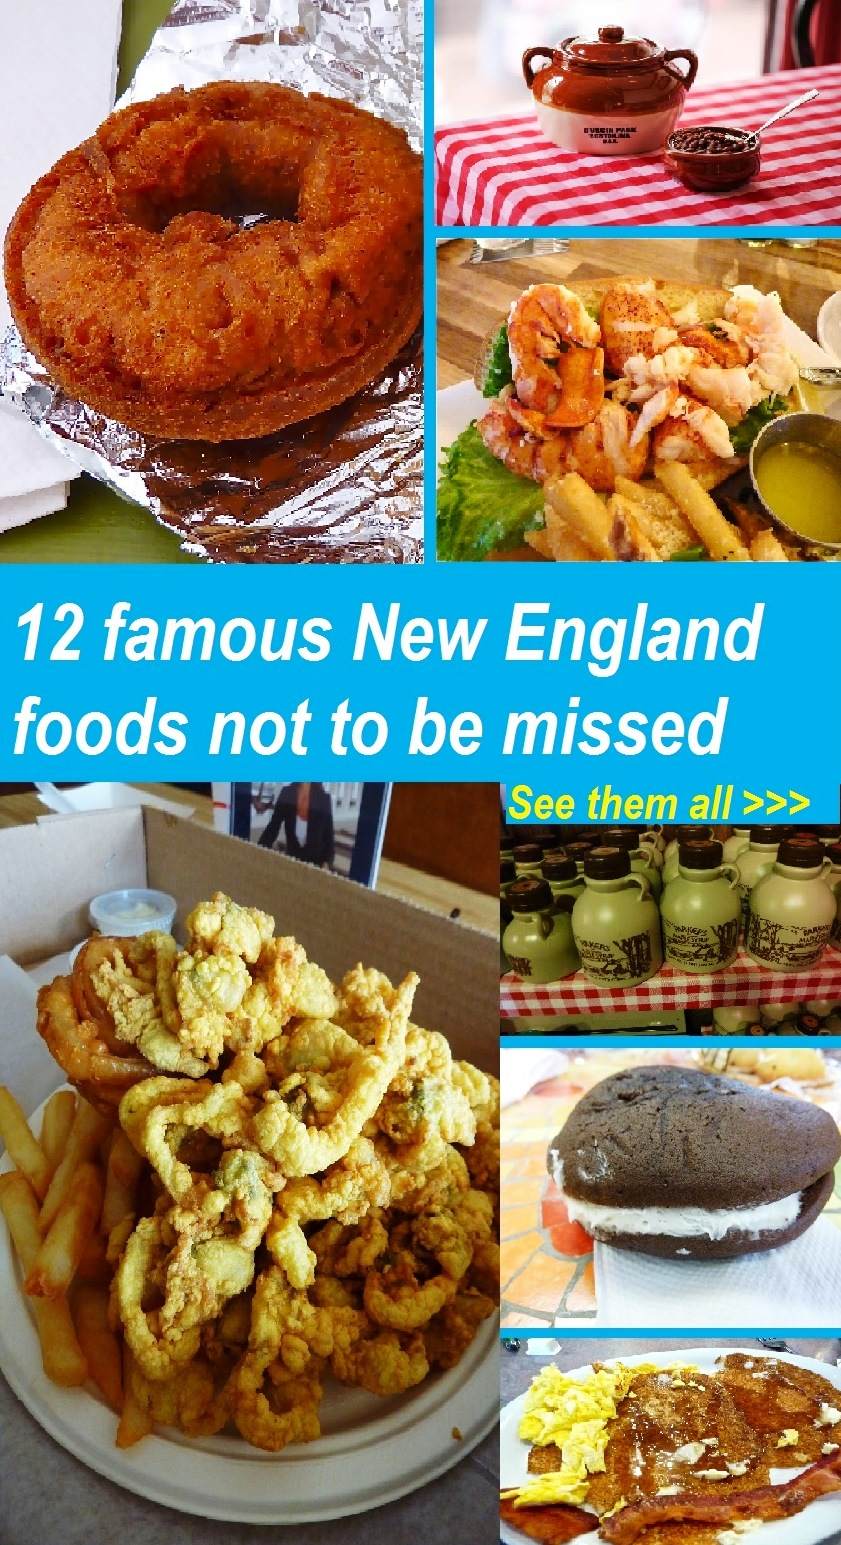 Famous New England foods not to be missed.